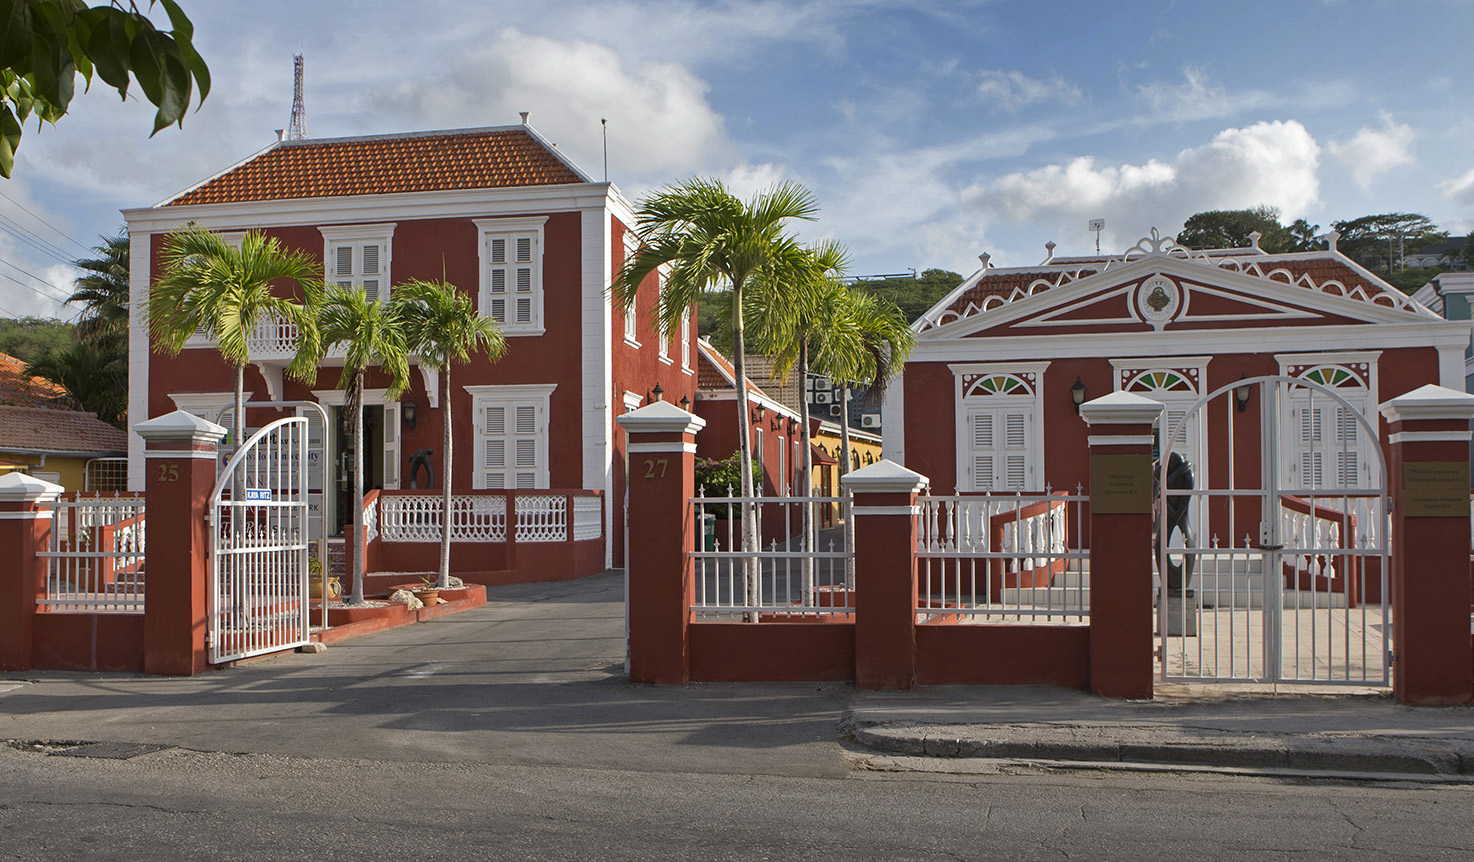 Curacao Resort for Sale – 76 Room Hotel, Shops, Offices